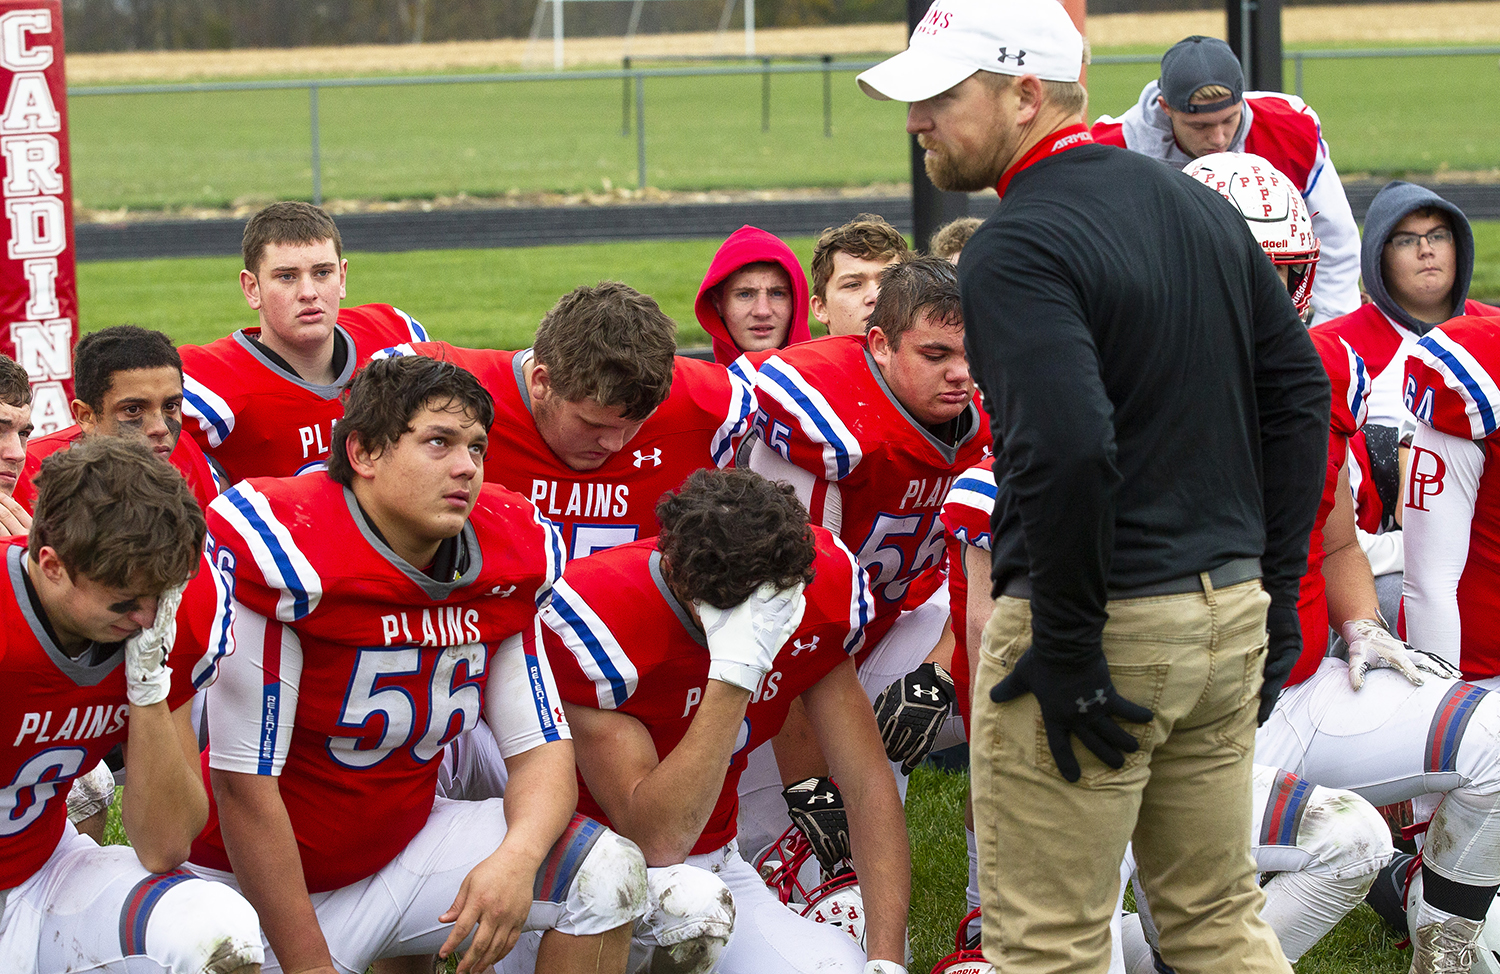 Pleasant Plains' Head Coach John Hambelton talks to the Cardinals after their loss to Greenville in the Class 2A playoff game Saturday, Nov. 3, 2018 at Pleasant Plains High School in Pleasant Plains, Ill. [Rich Saal/The State Journal-Register]